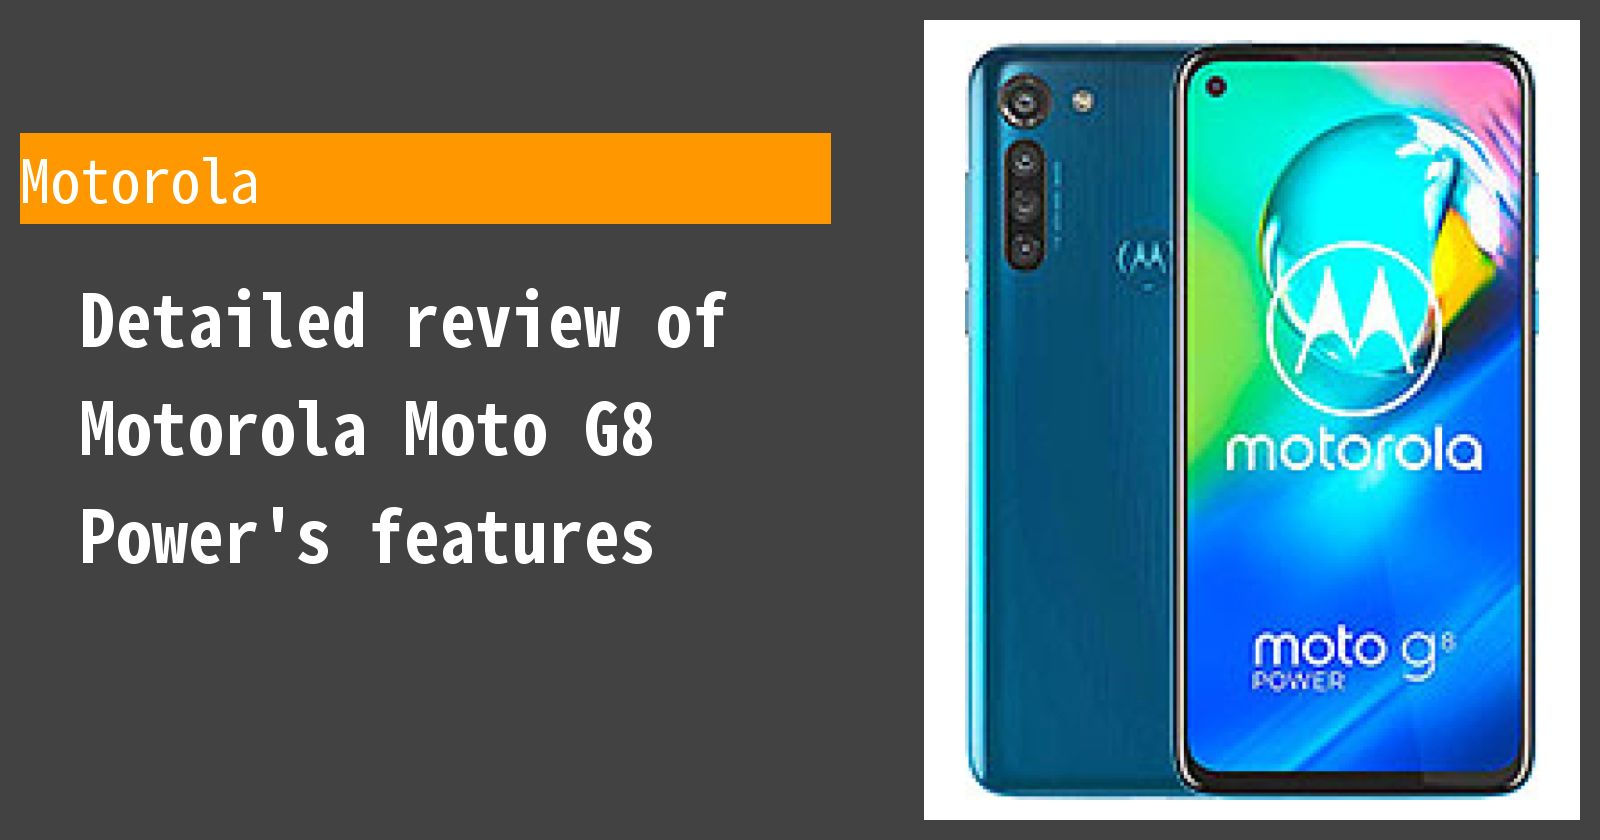 Detailed review of Motorola Moto G8 Power's features